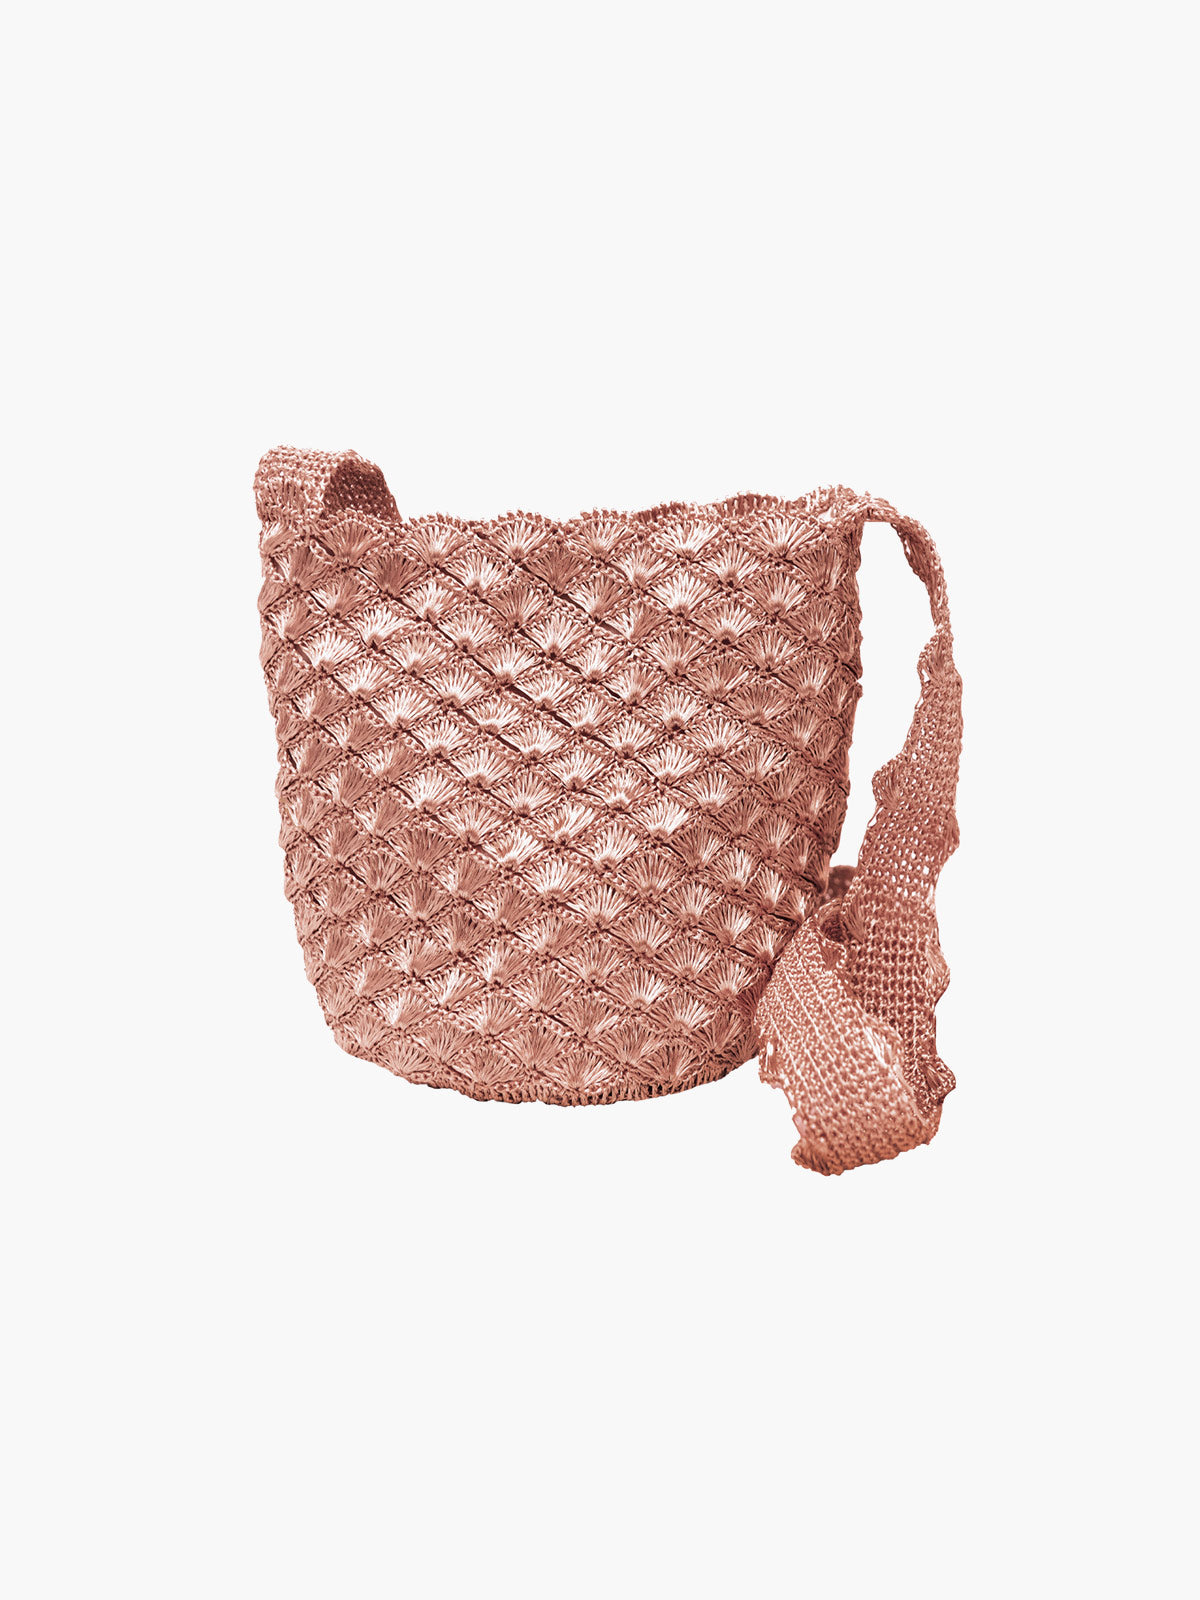 Seashell Weave Mochila | Rose Gold Seashell Weave Mochila | Rose Gold